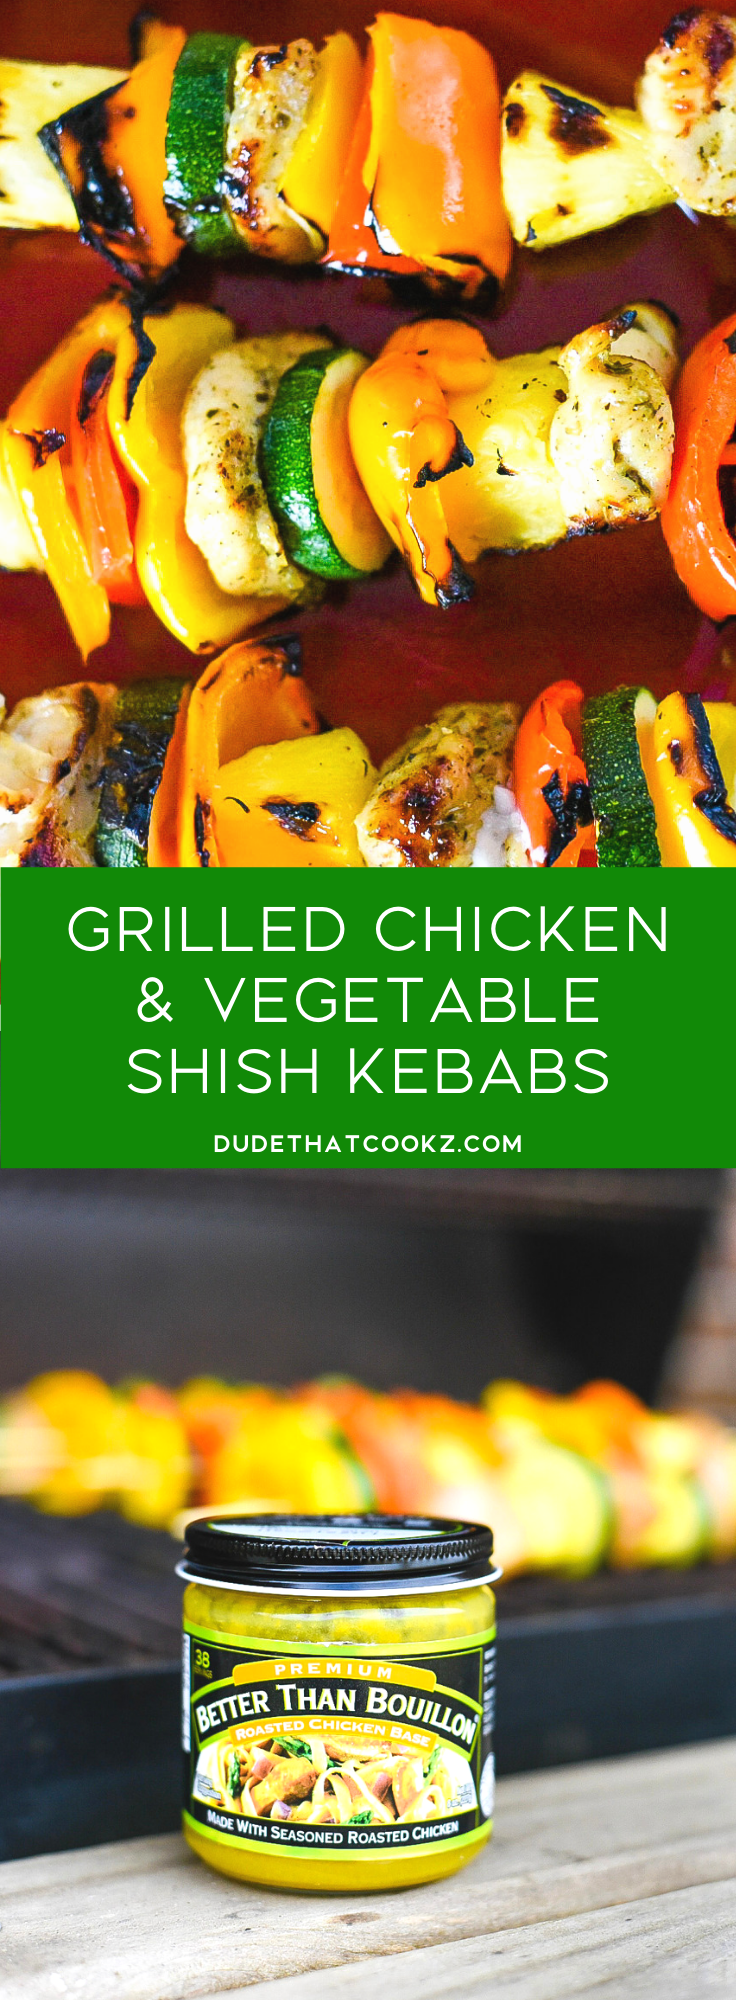 Grilled Chicken & Vegetable Shish Kebabs